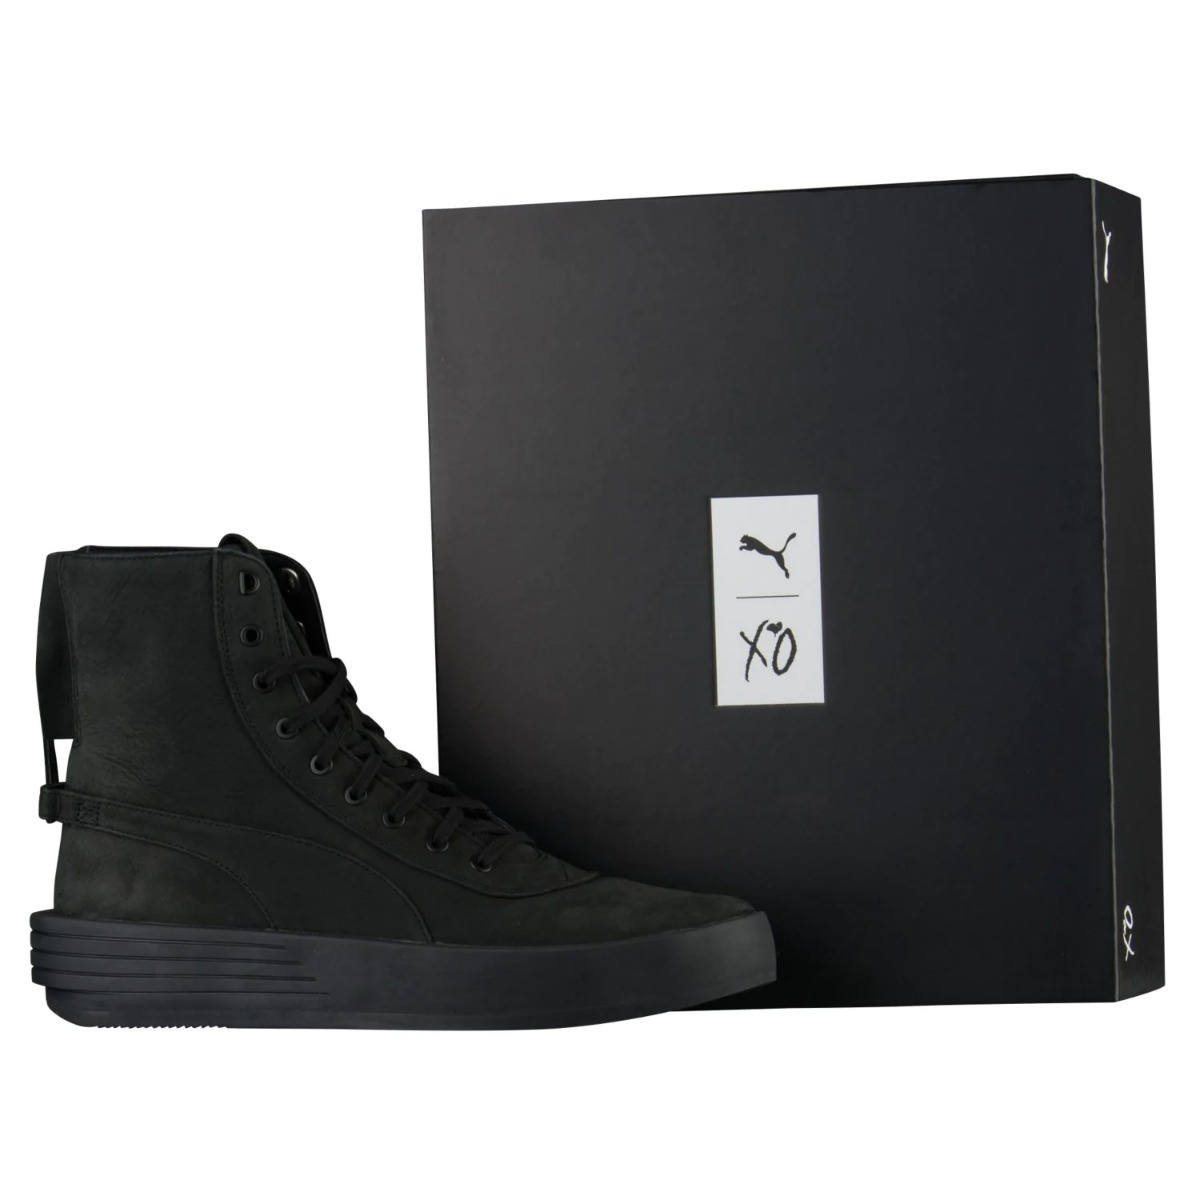 how to serch wide selection fast delivery Puma Xo Parallel The Weeknd Triple Black Originales Nuevos